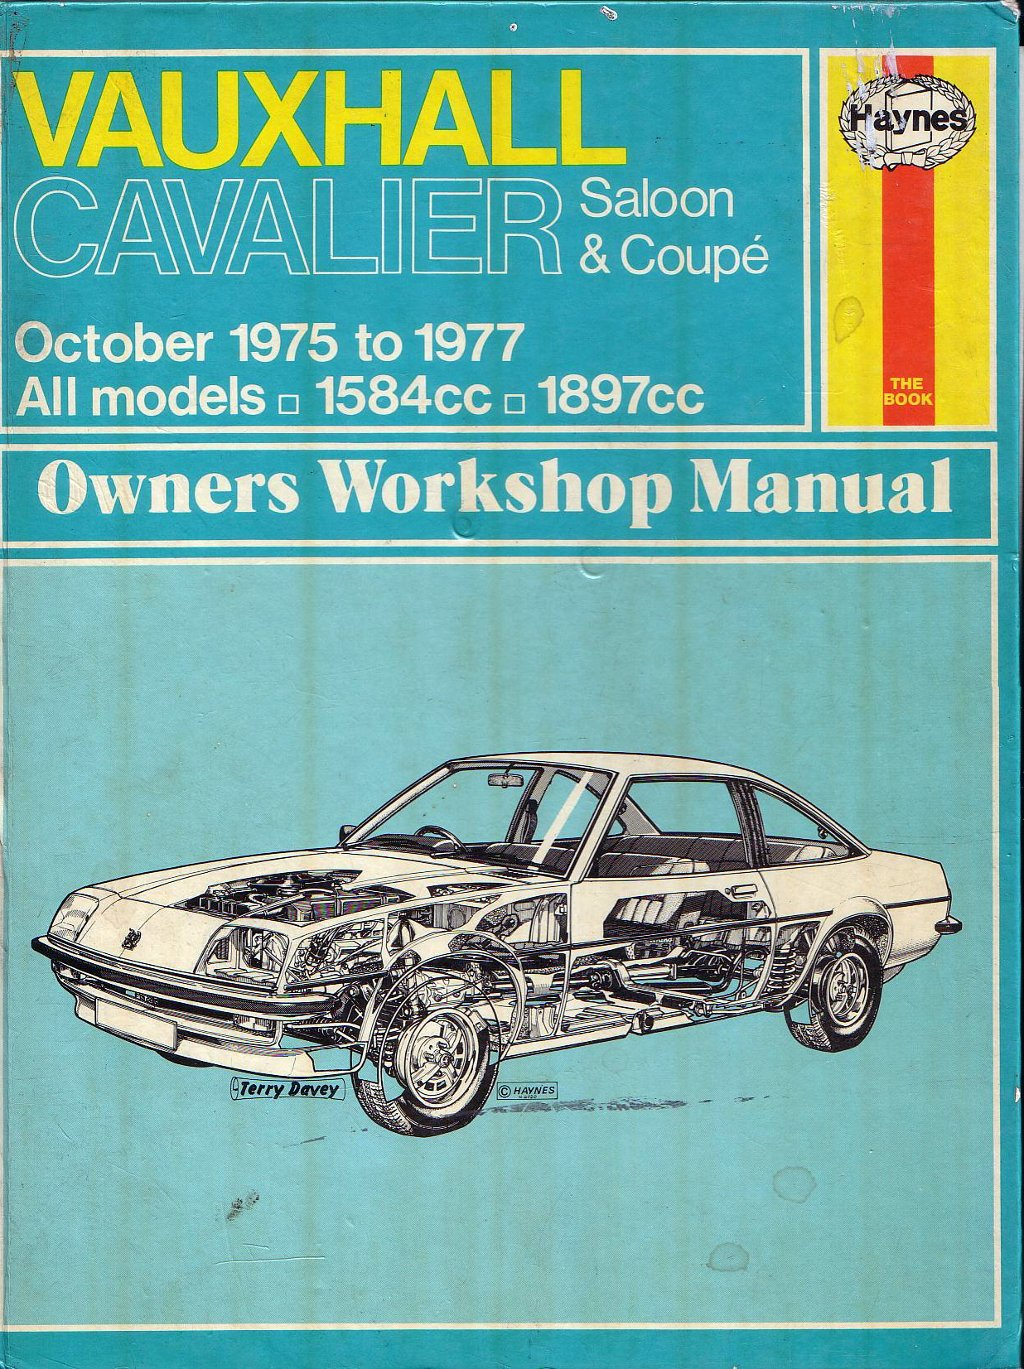 For Sale - Haynes Manual for Vauxhall Cavalier Mk1 - £15